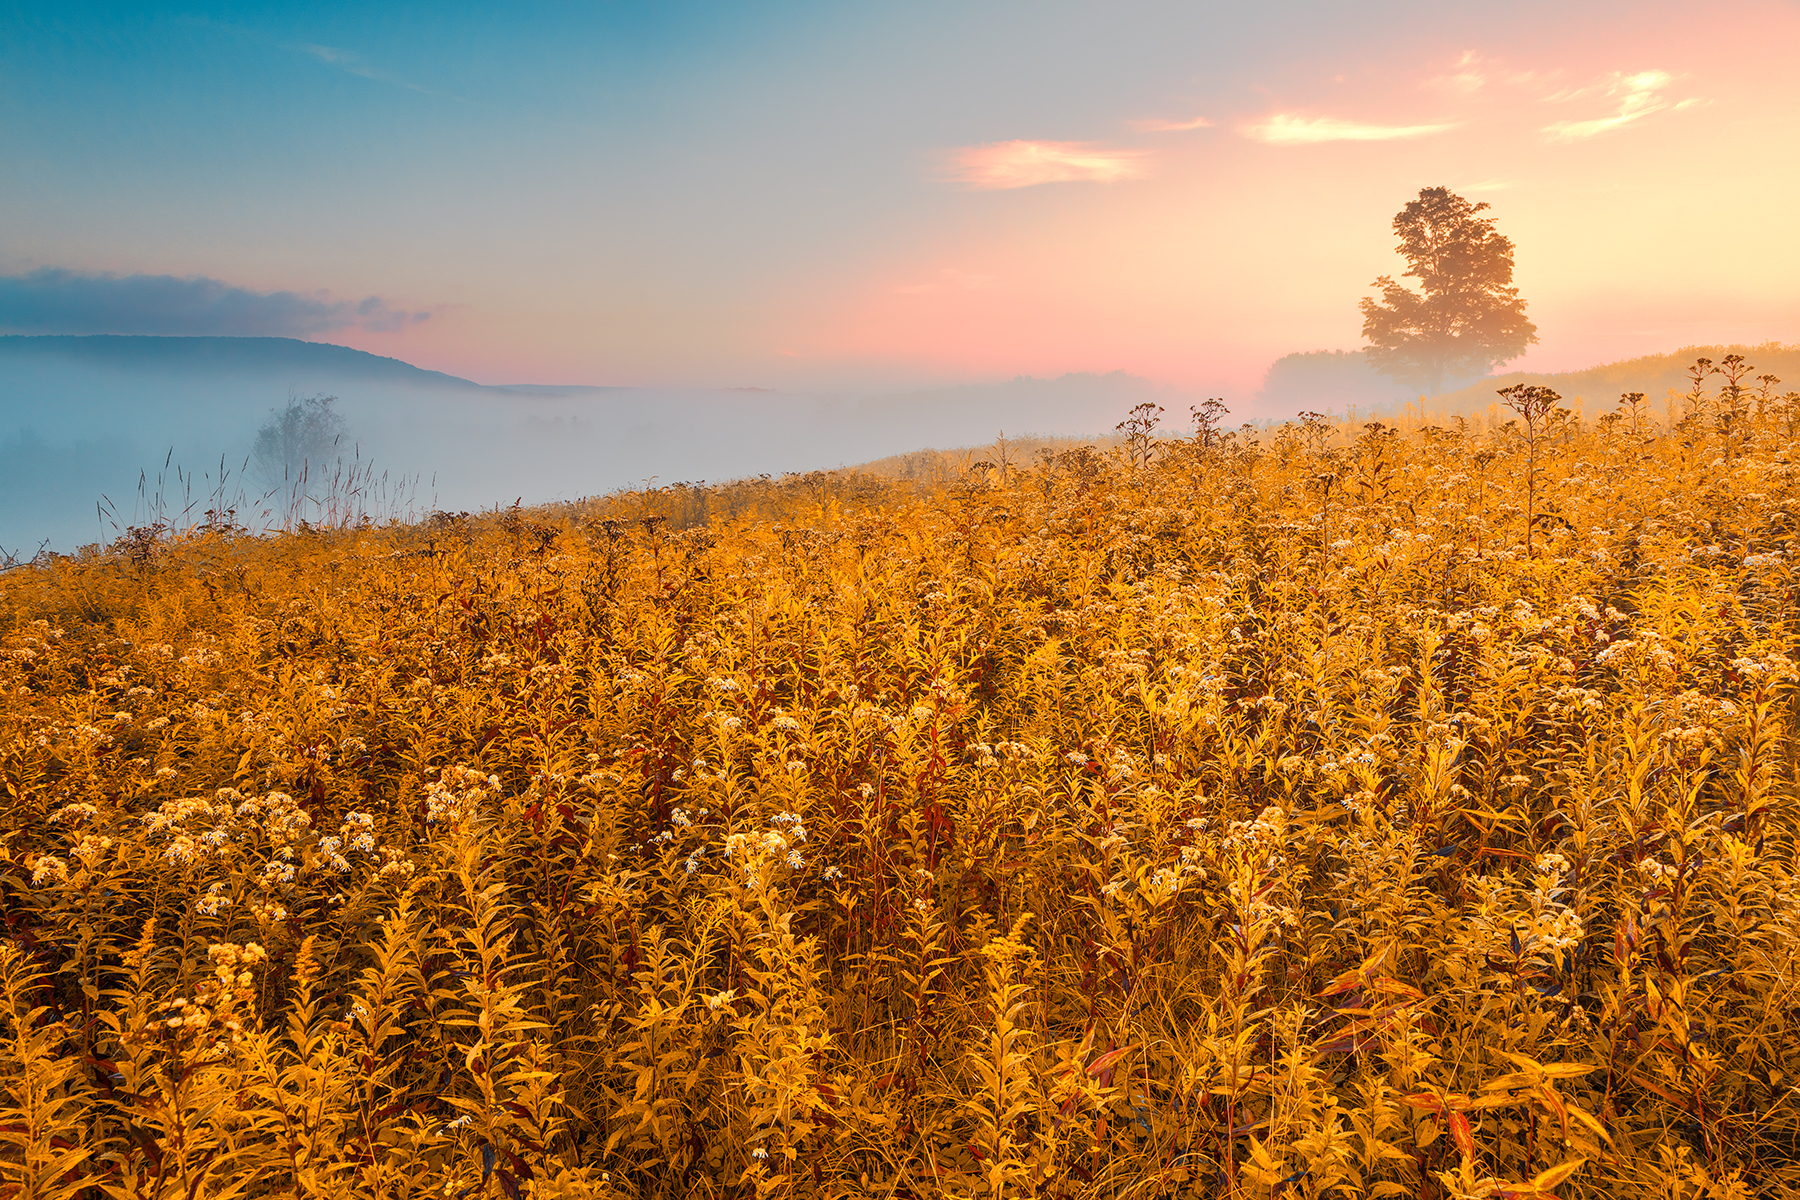 Misty canaan valley sunrise - gold pastel fantasy hdr photo